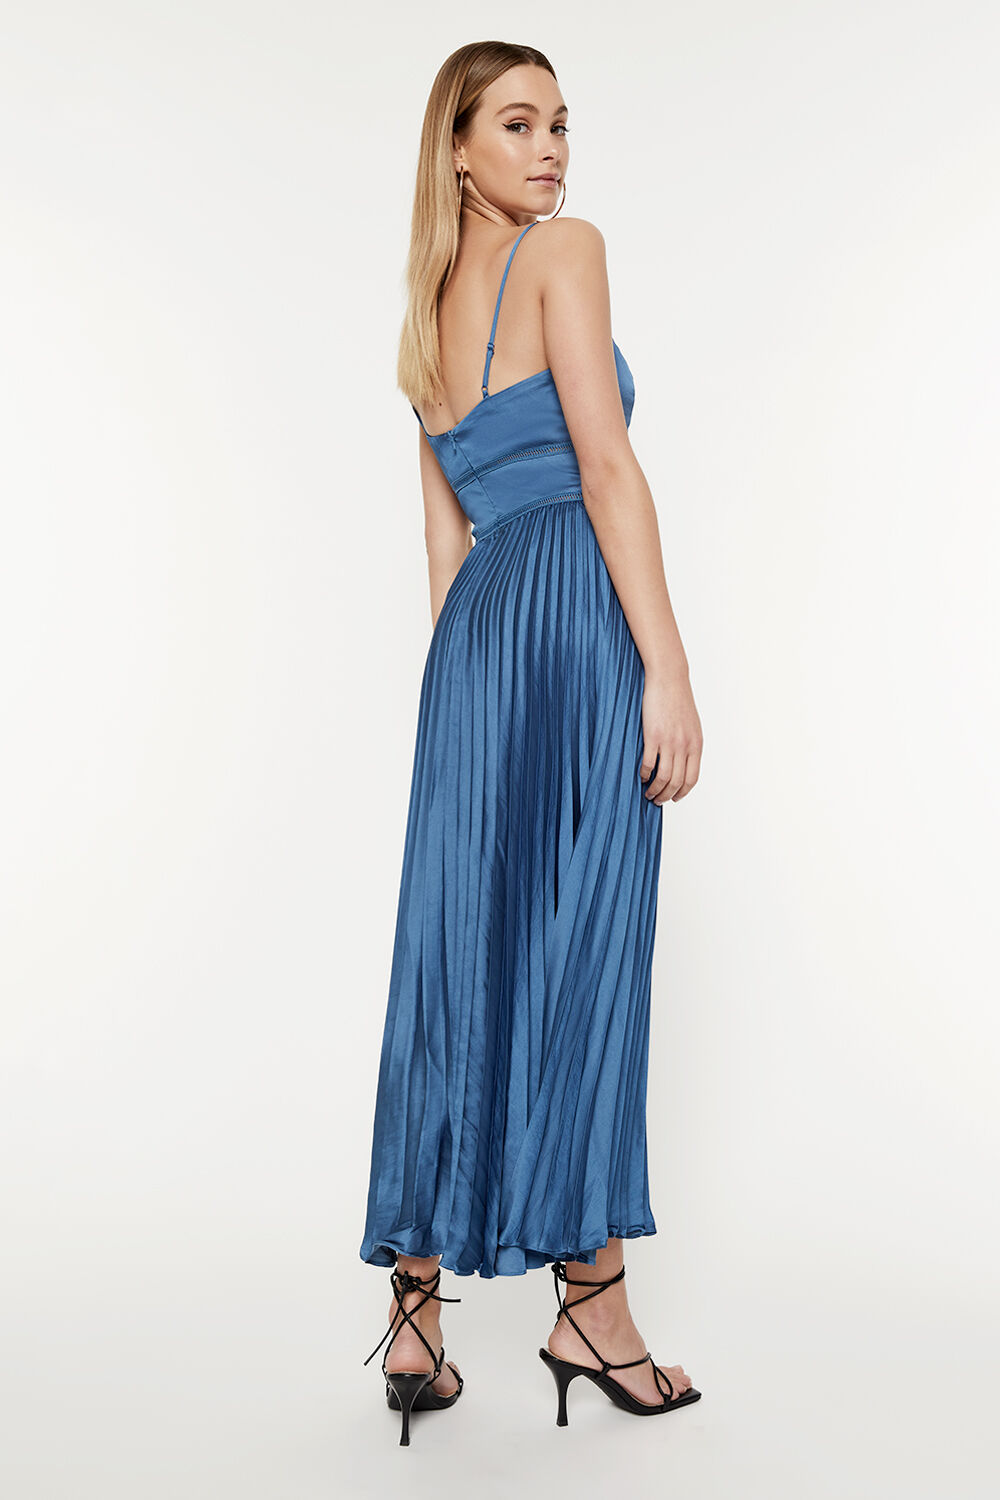 MARY PLEATED DRESS in colour BAYBERRY